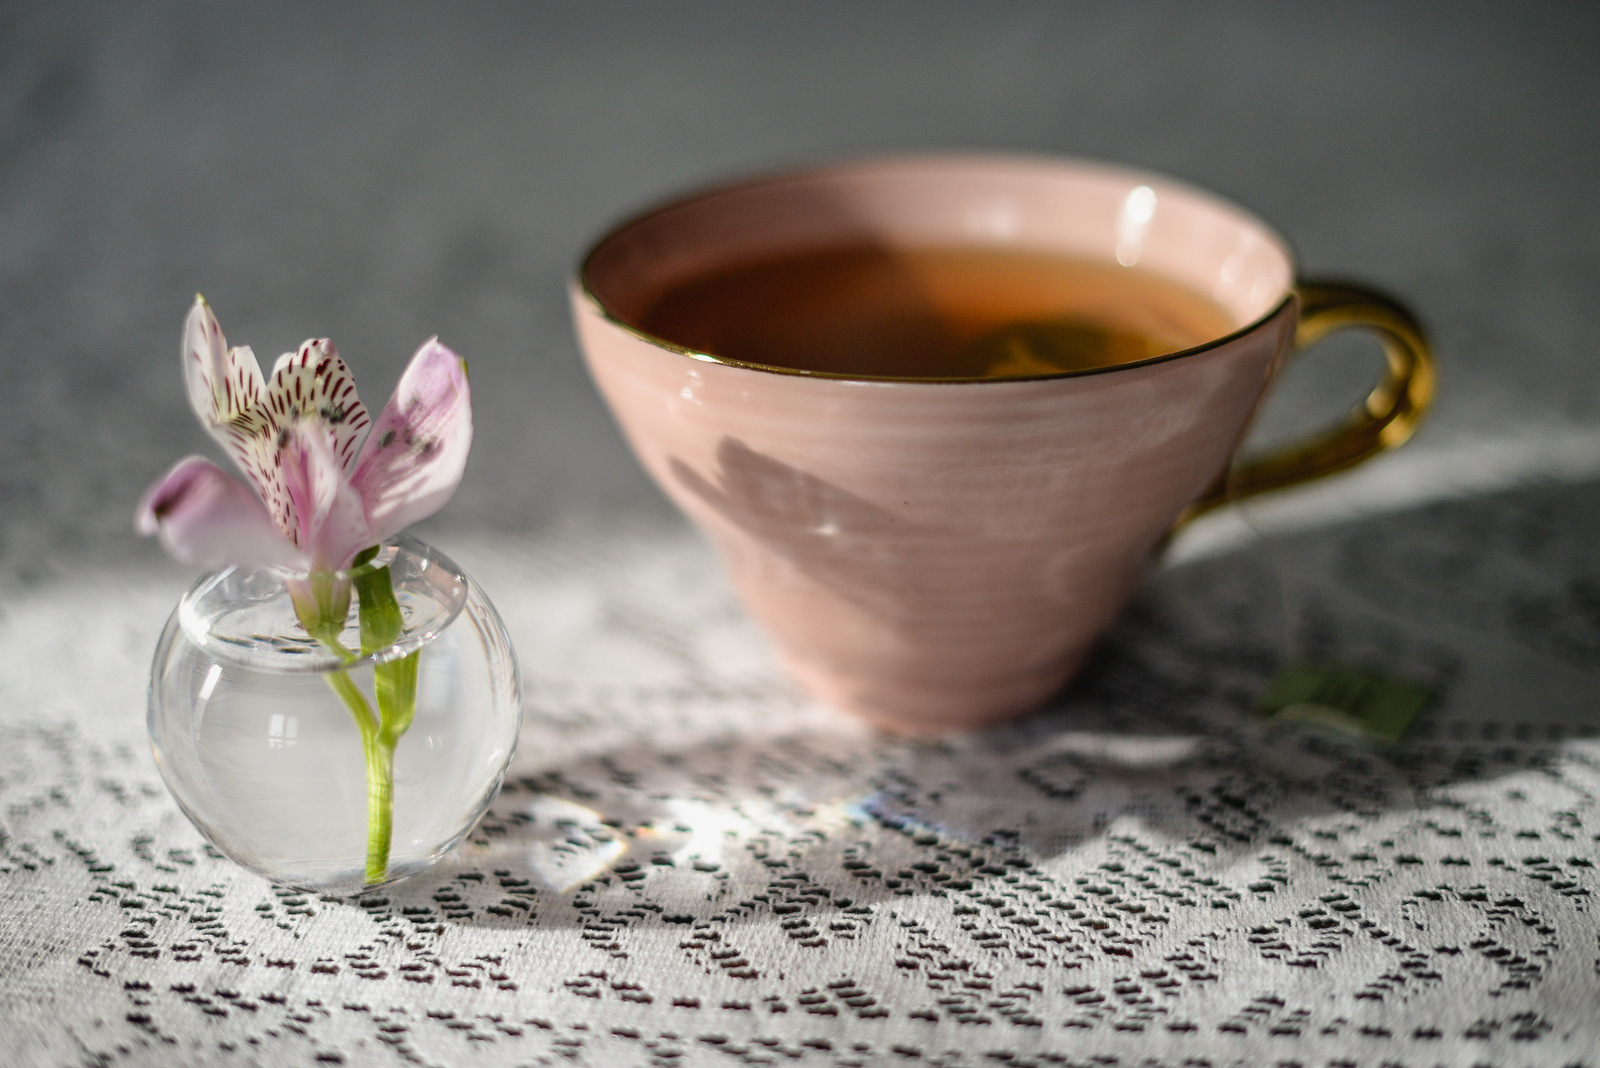 teacup and flower